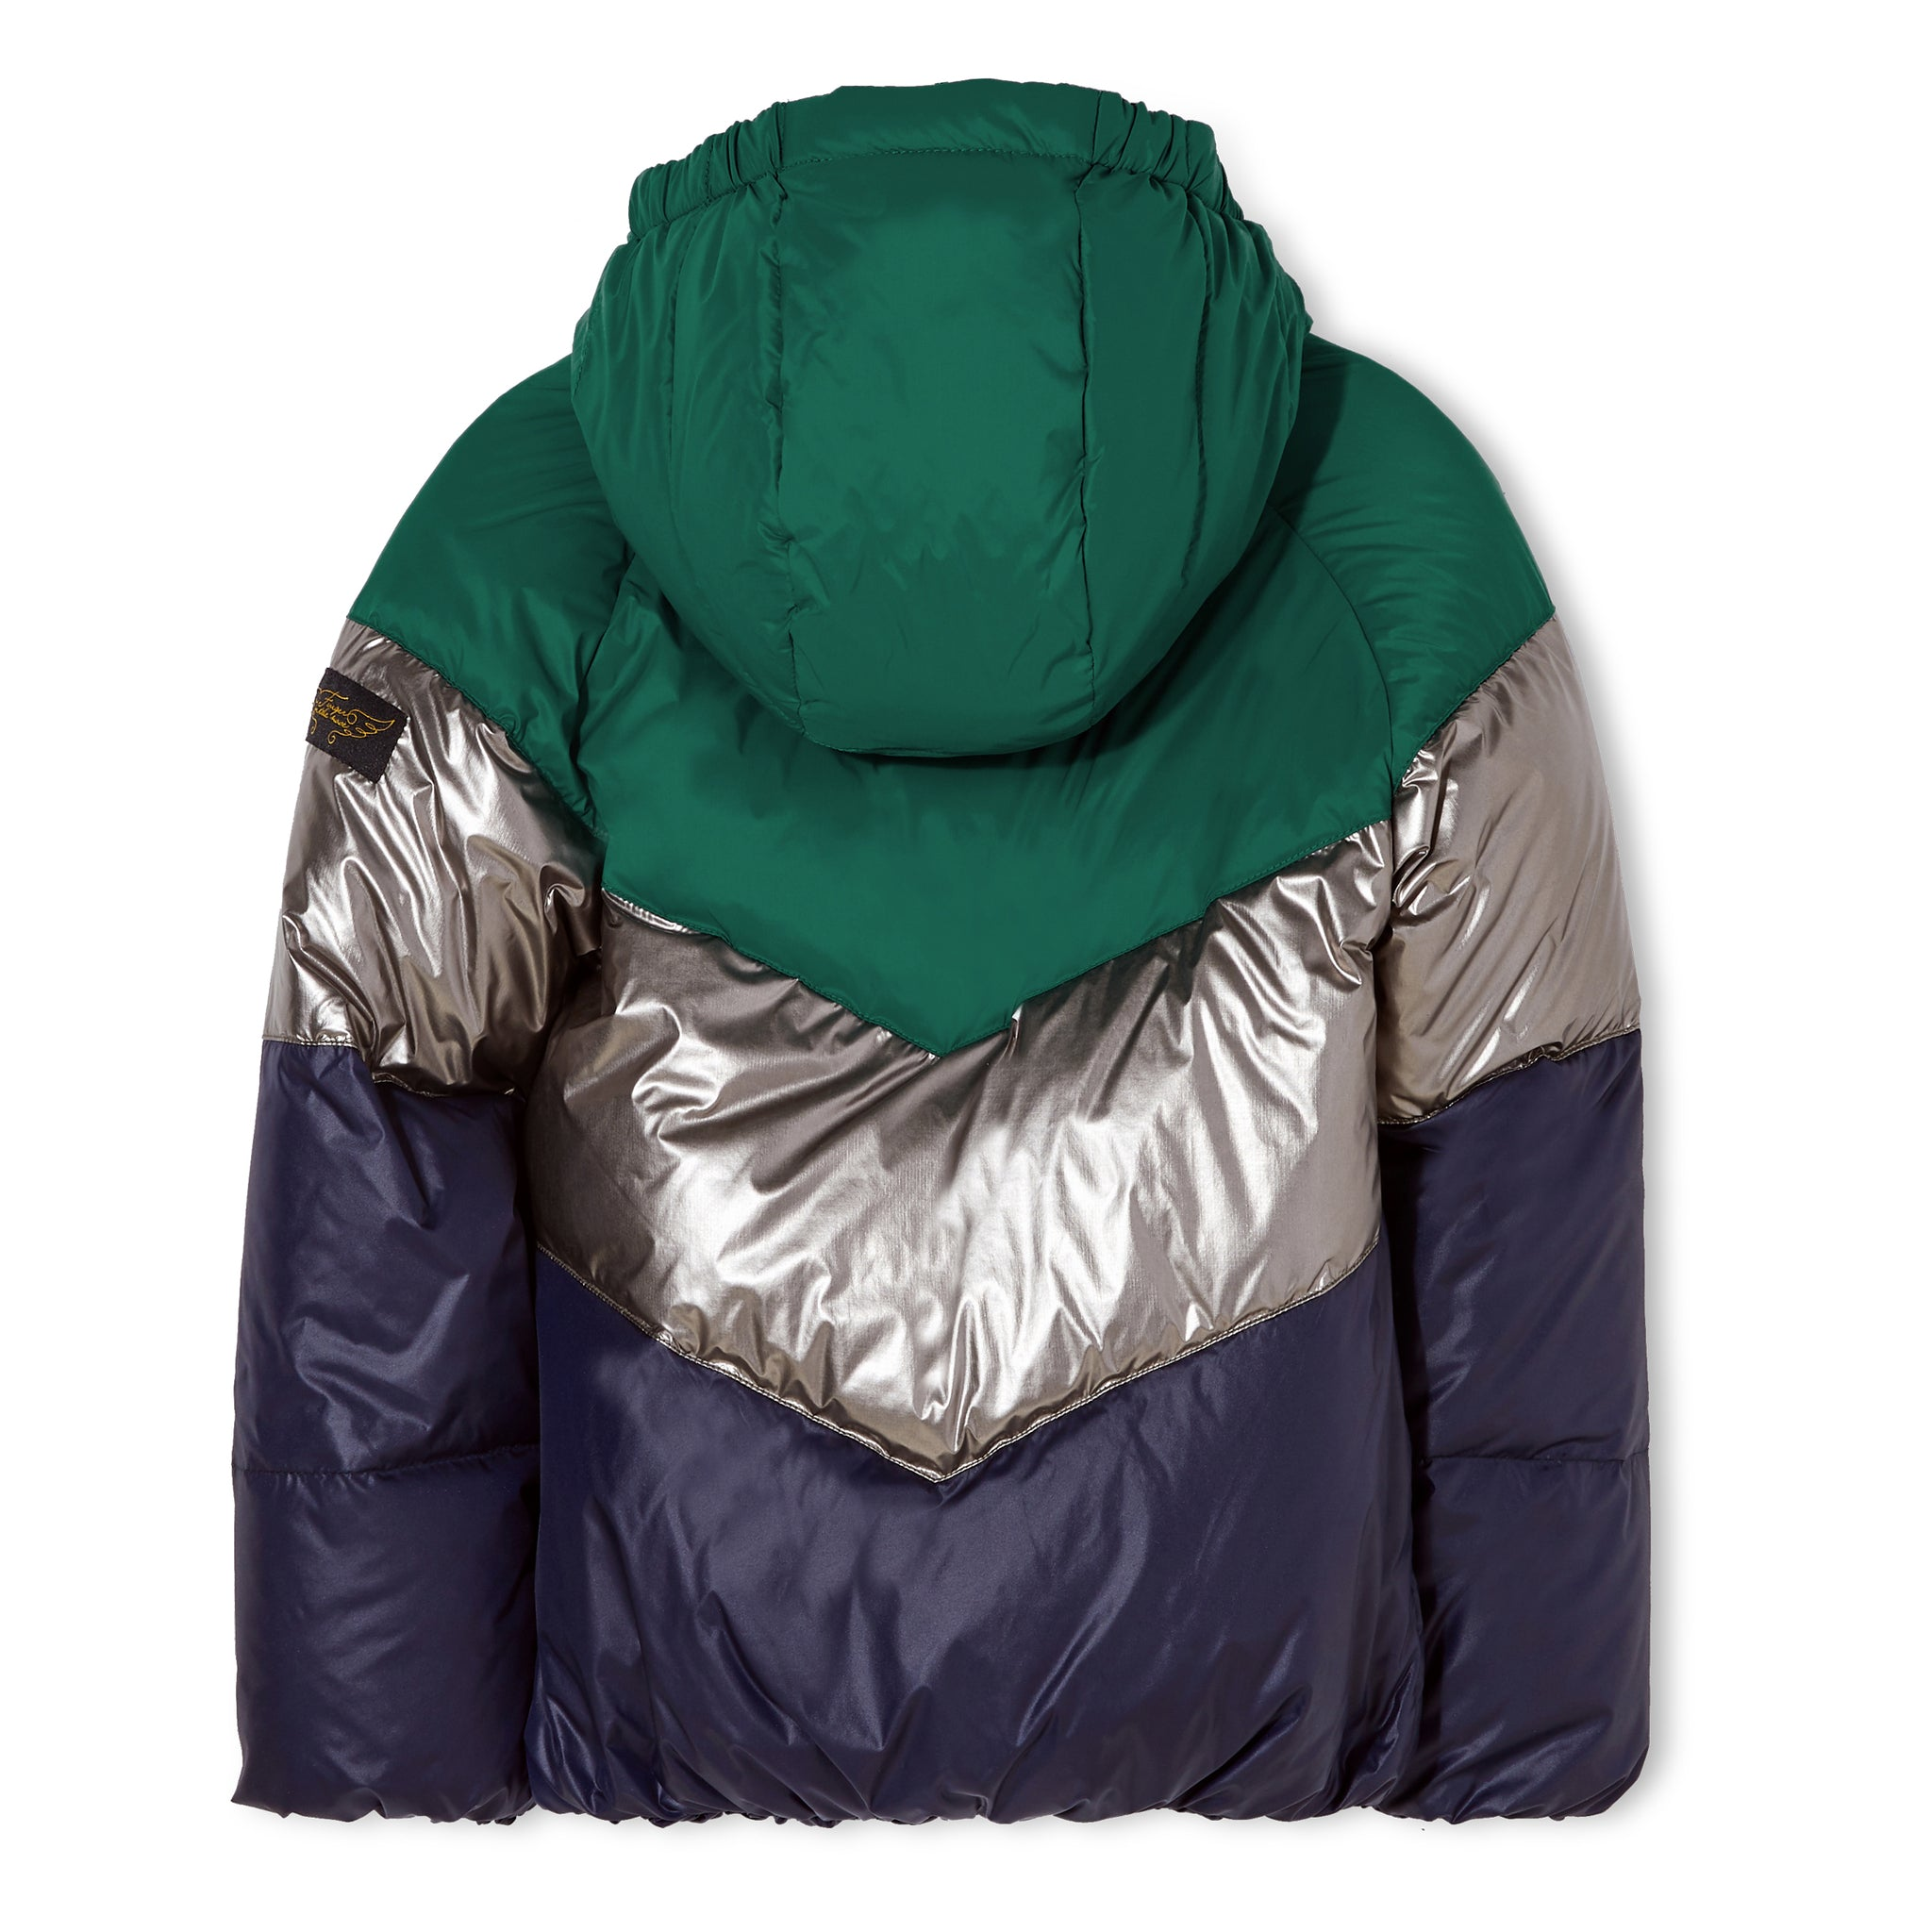 SNOWDANCE Navy - Reversible Down Jacket 3